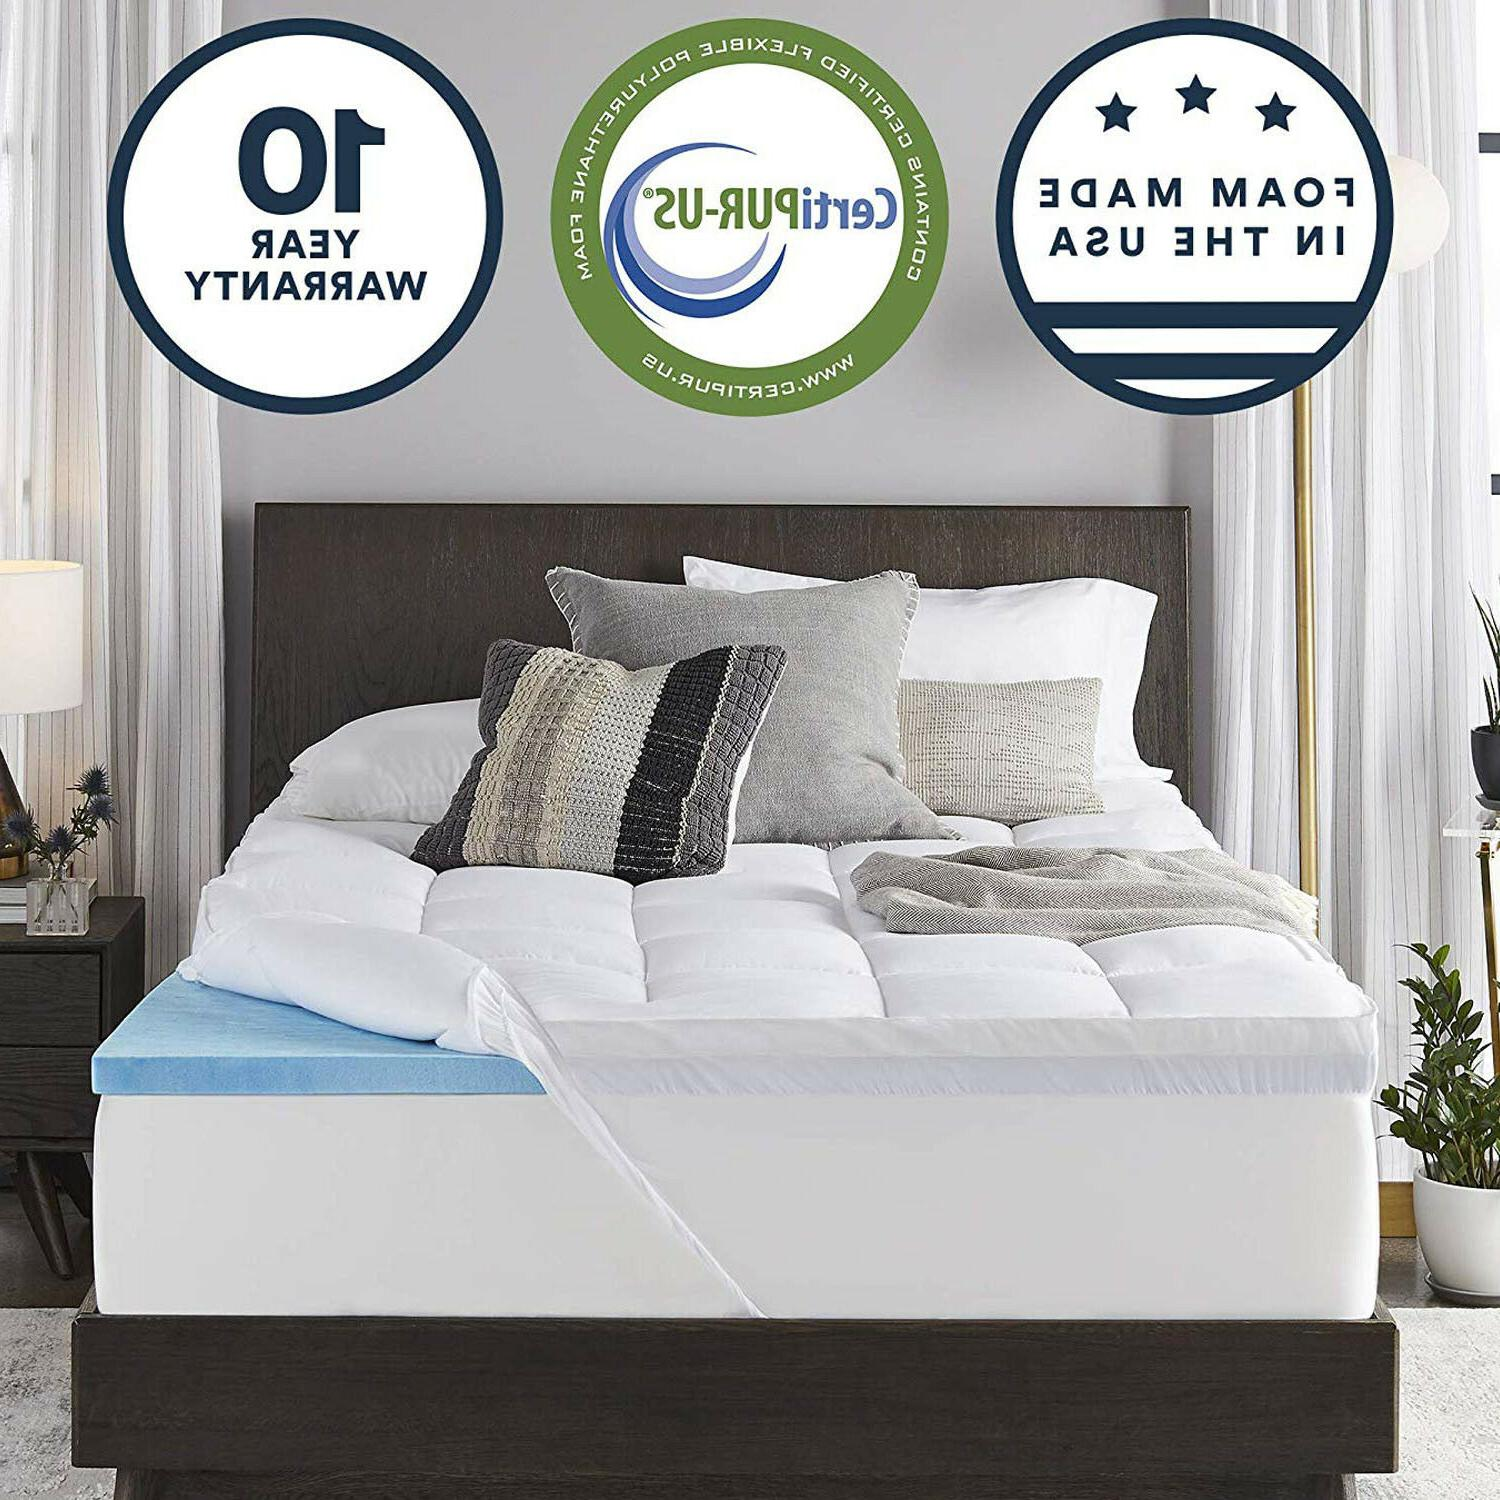 4 Inches Gel Memory Foam Mattress Topper Dual Layer Cooling